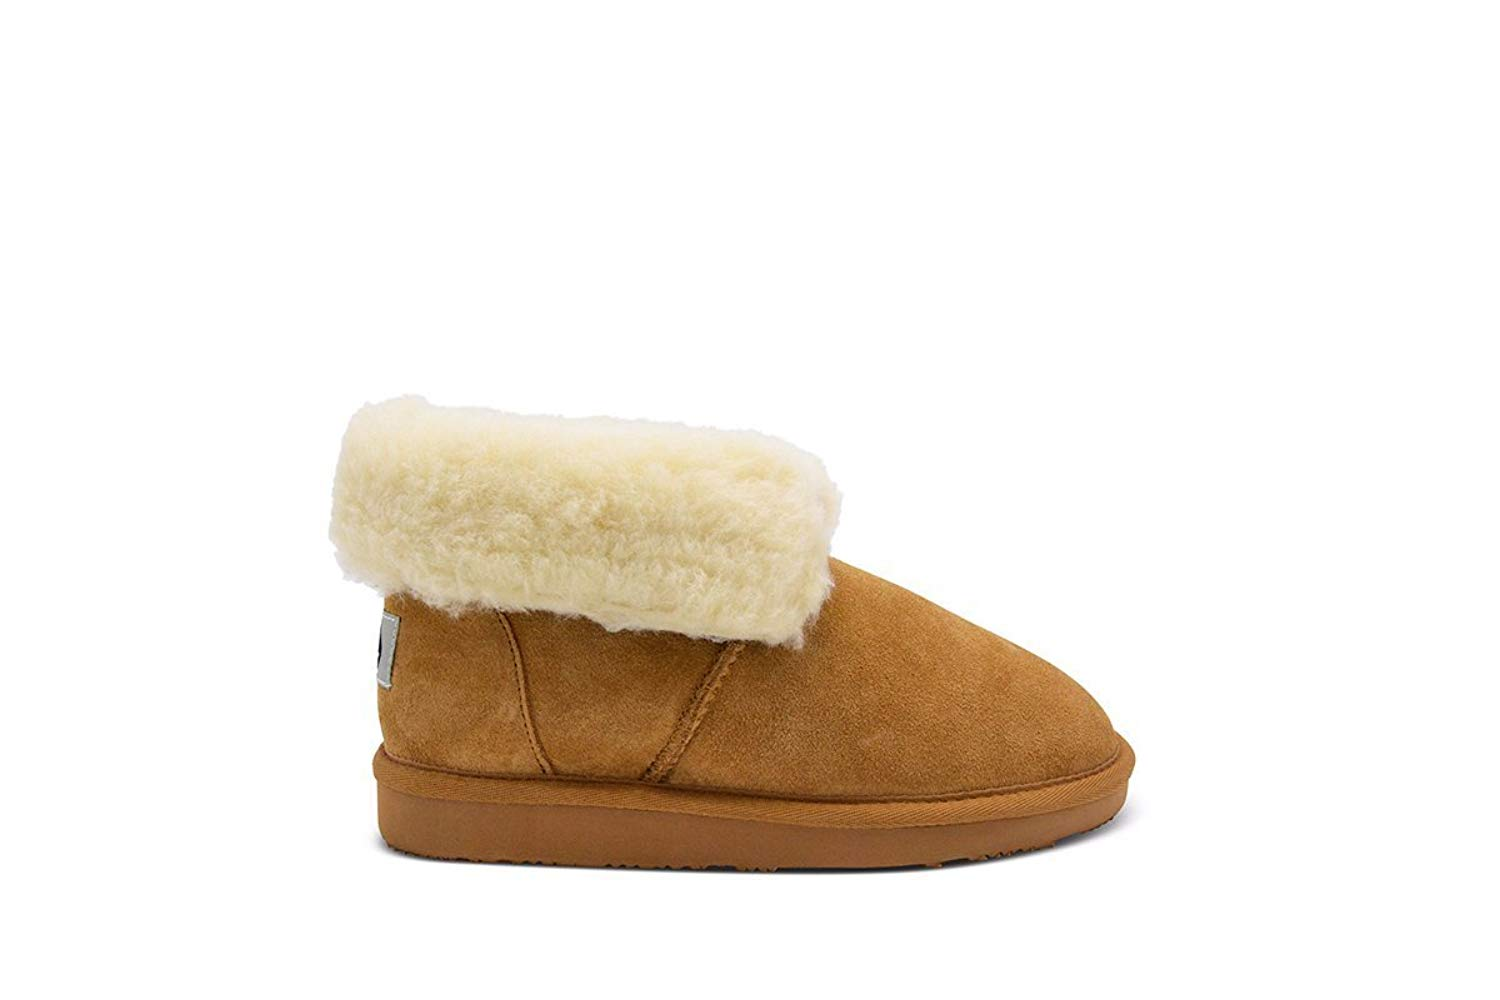 Aussie Merino Fur Lined Wool Slipper Cozy Indoor Warm House Slipper W/Indoor Outdoor Sole-Lily